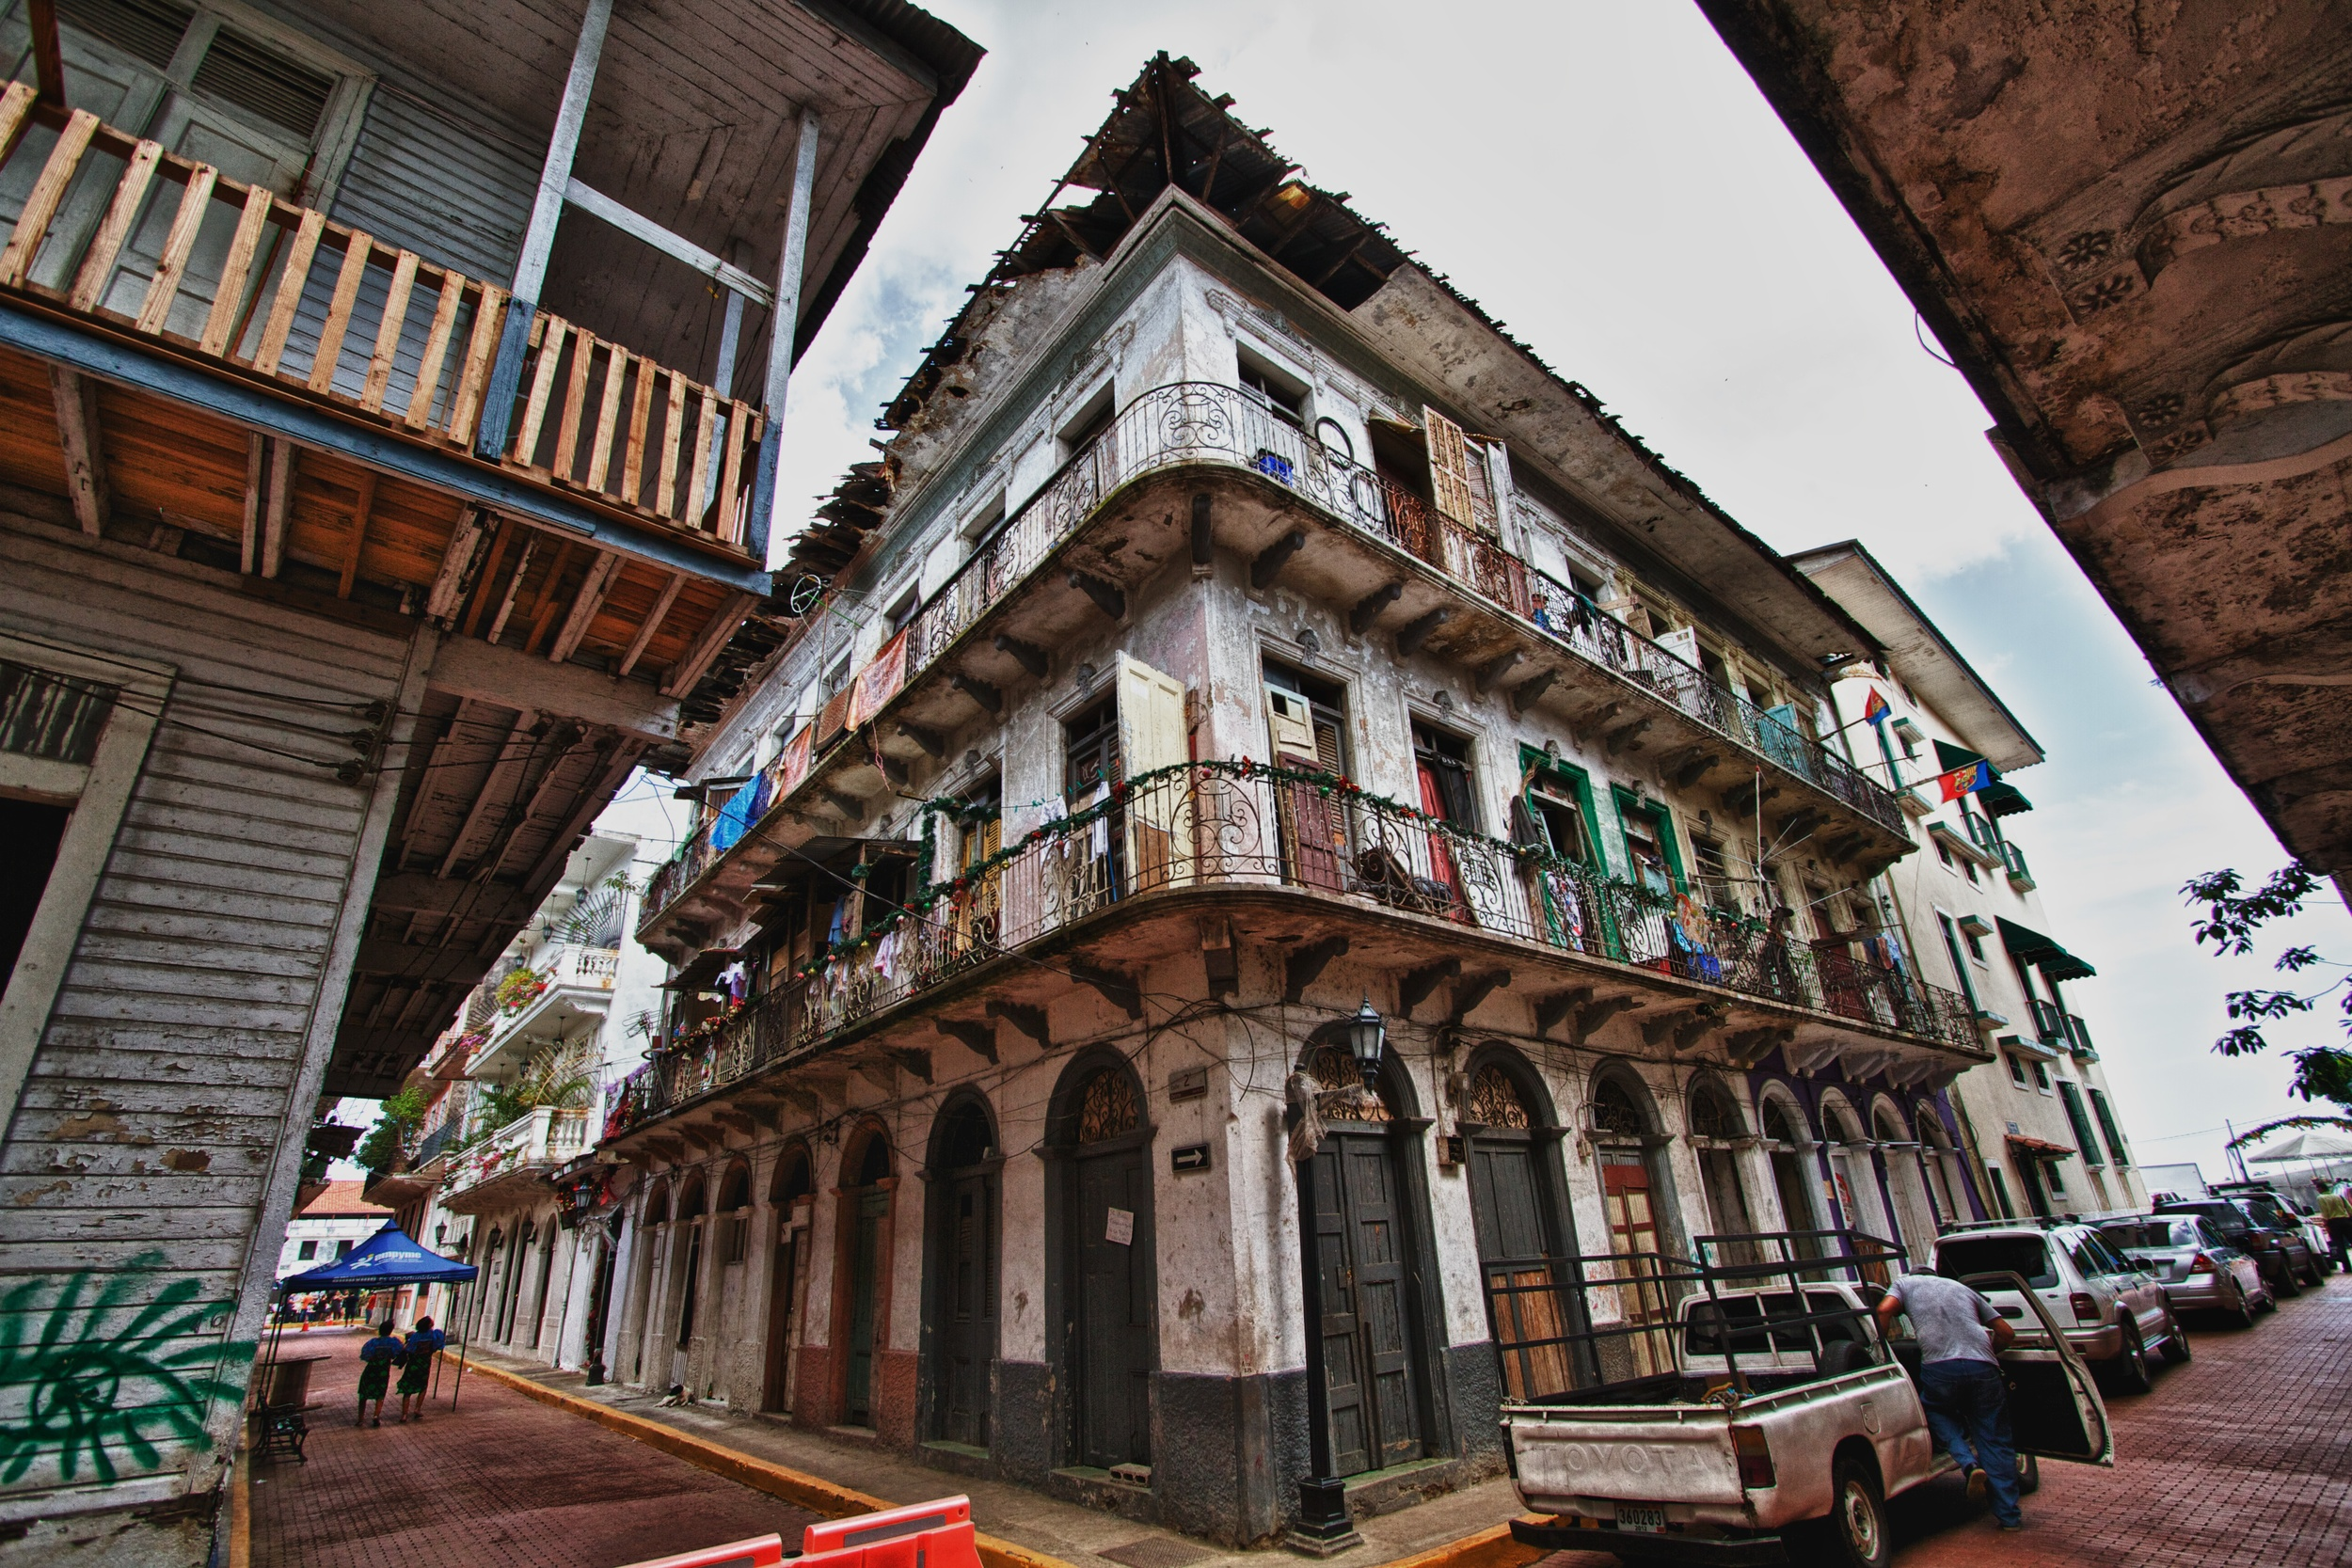 The crowded tenements of Casco Viejo. Canon EOS 7D EF-S 10-22mm at 10mm f/4.5 1/320 ISO 100